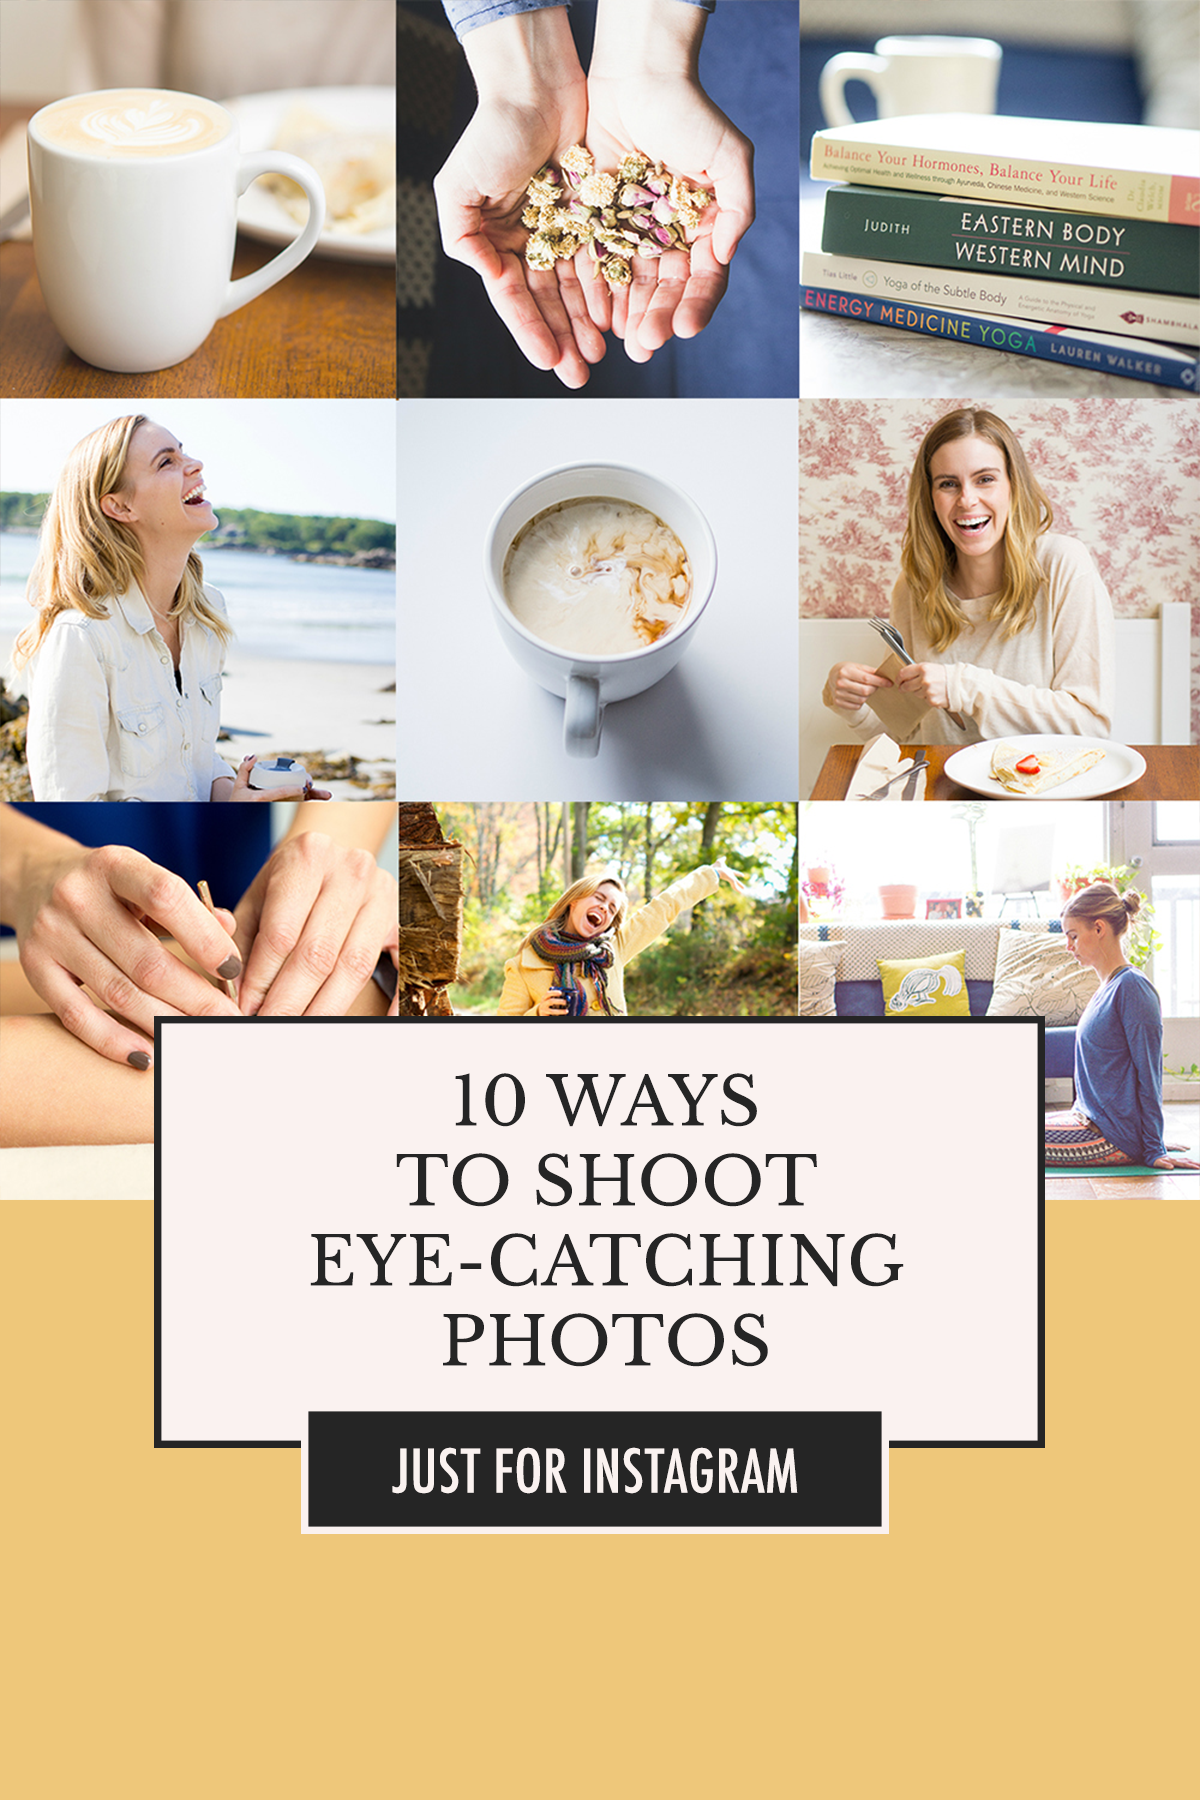 10 Ways to Shoot Eye-Catching Photos for Instagra,